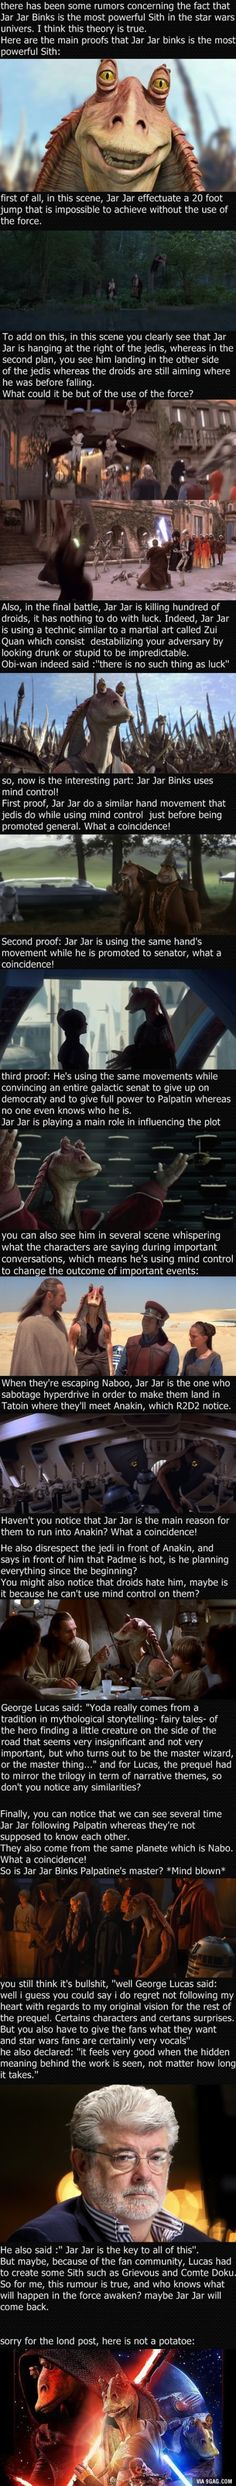 This explannation of the theory saying that Jar Jar Binks is the most powerful Sith in the universe will blow your mind!